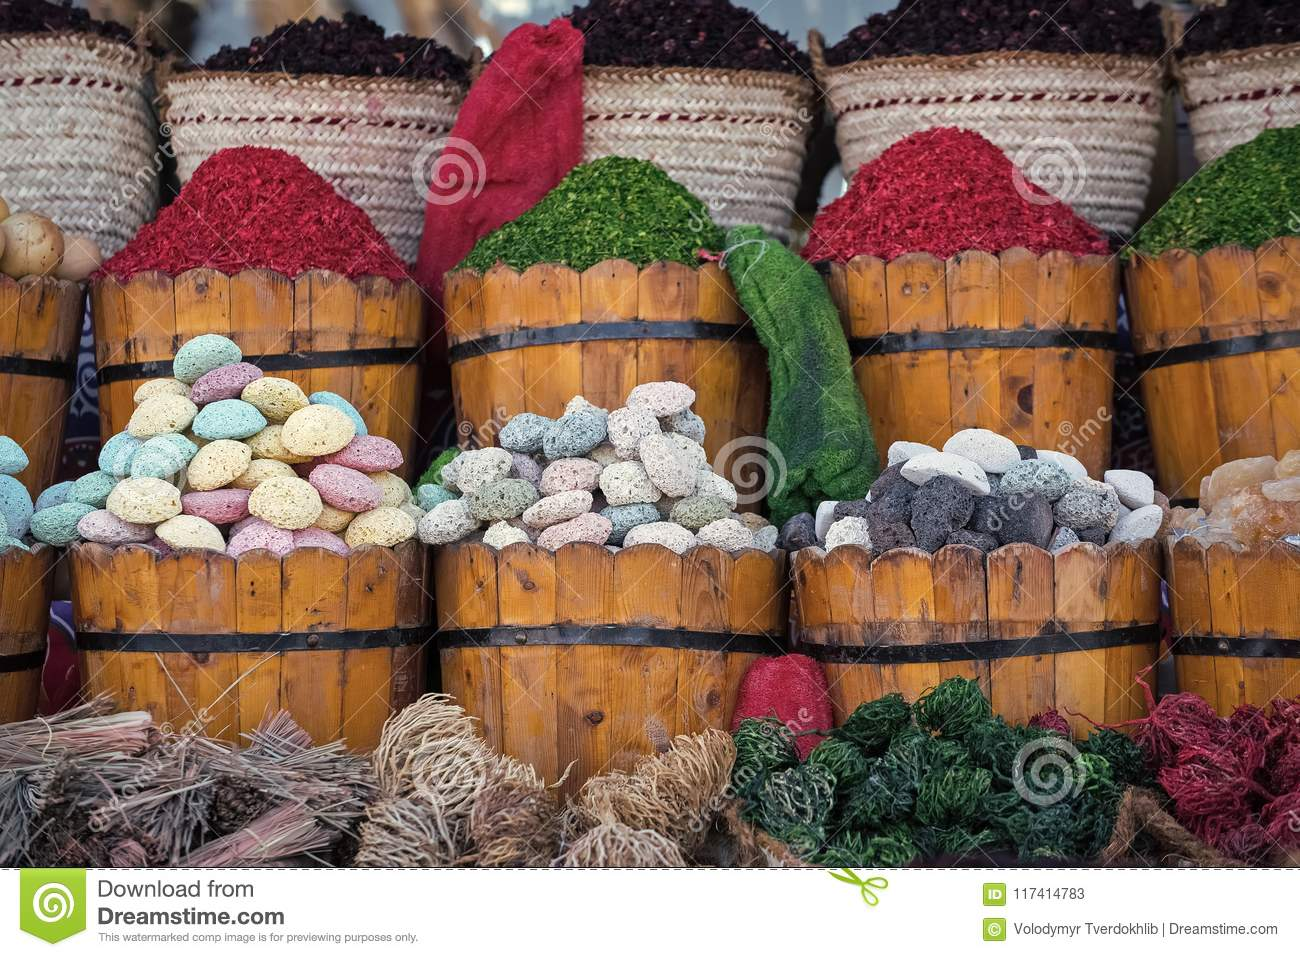 Algae Pumice Stones Goods For Bathing Stock Image - Image of bath ...